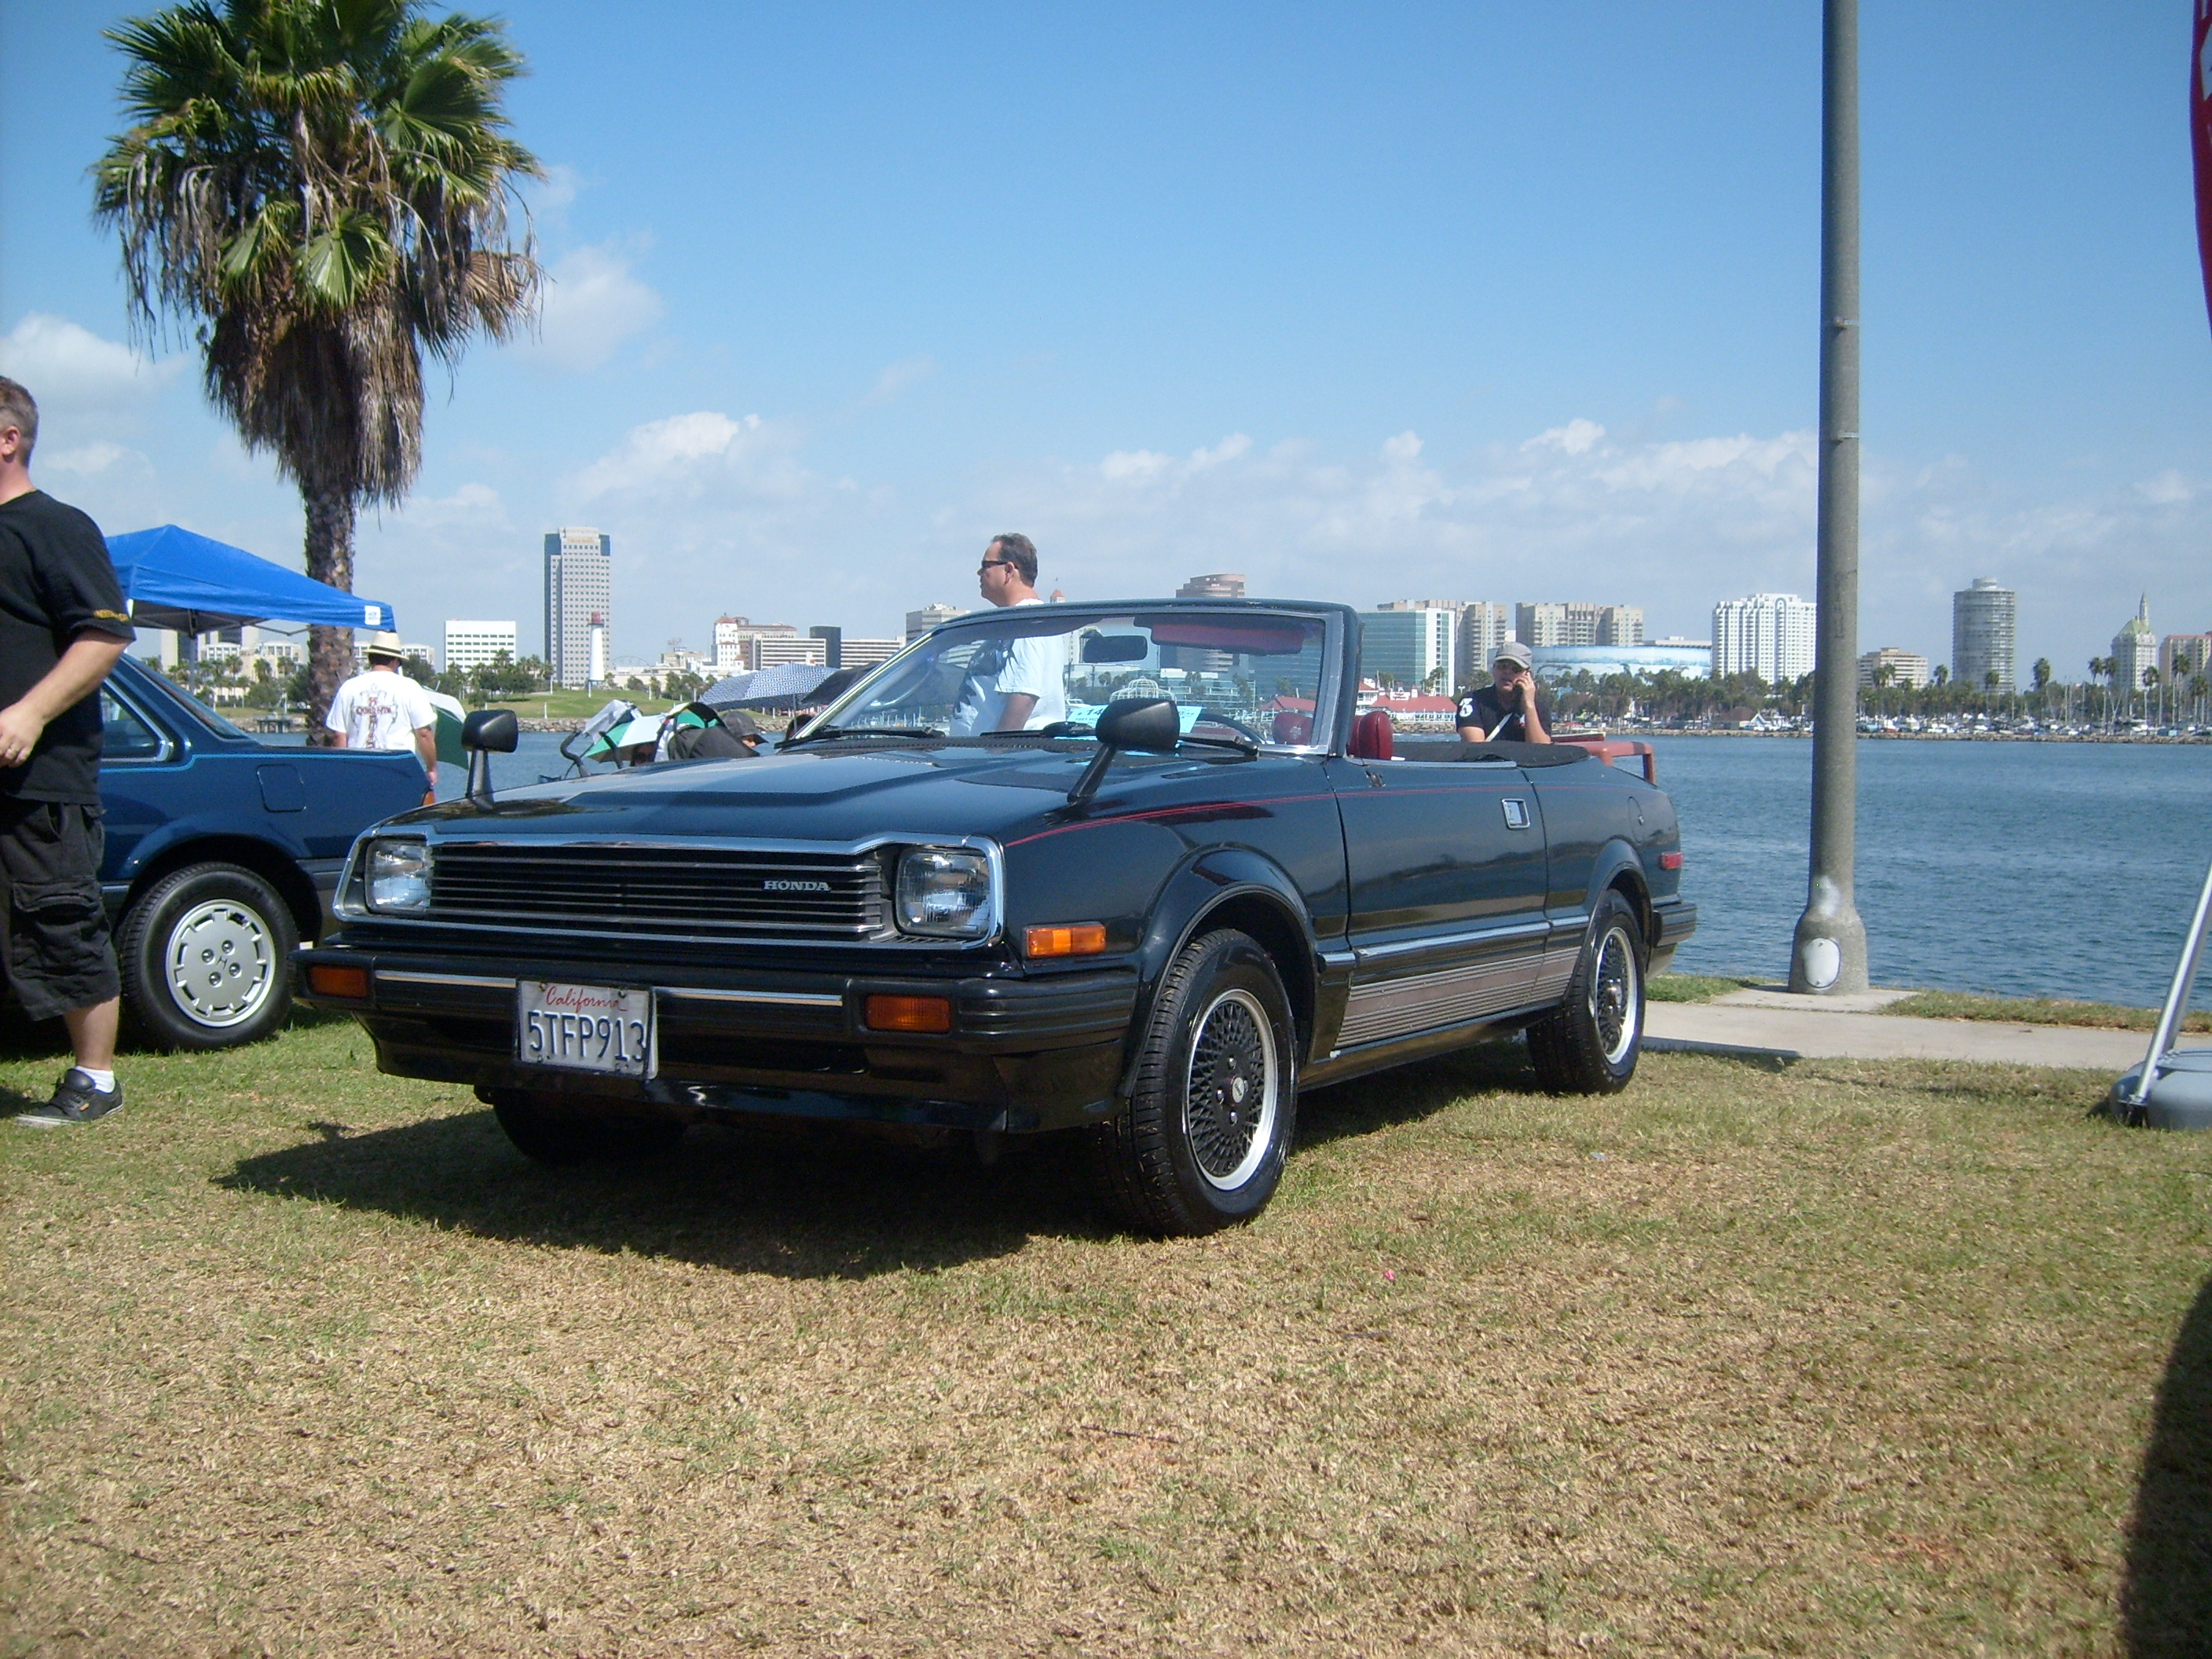 JCCS 2014 Part 3: Preludes, Civics and CRXs